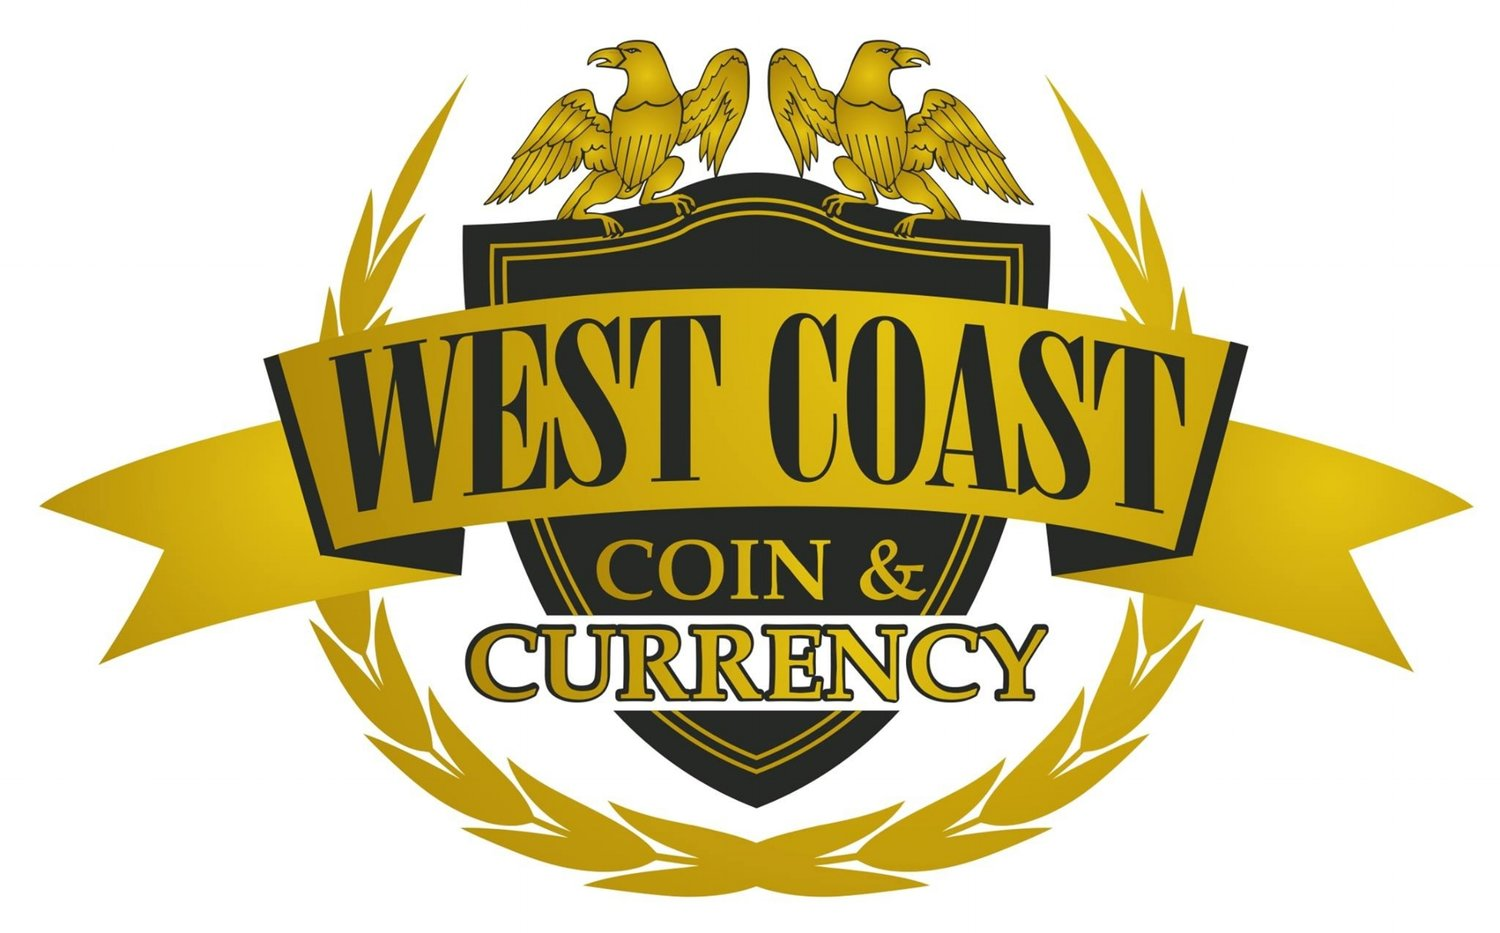 West Coast Coin & Currency